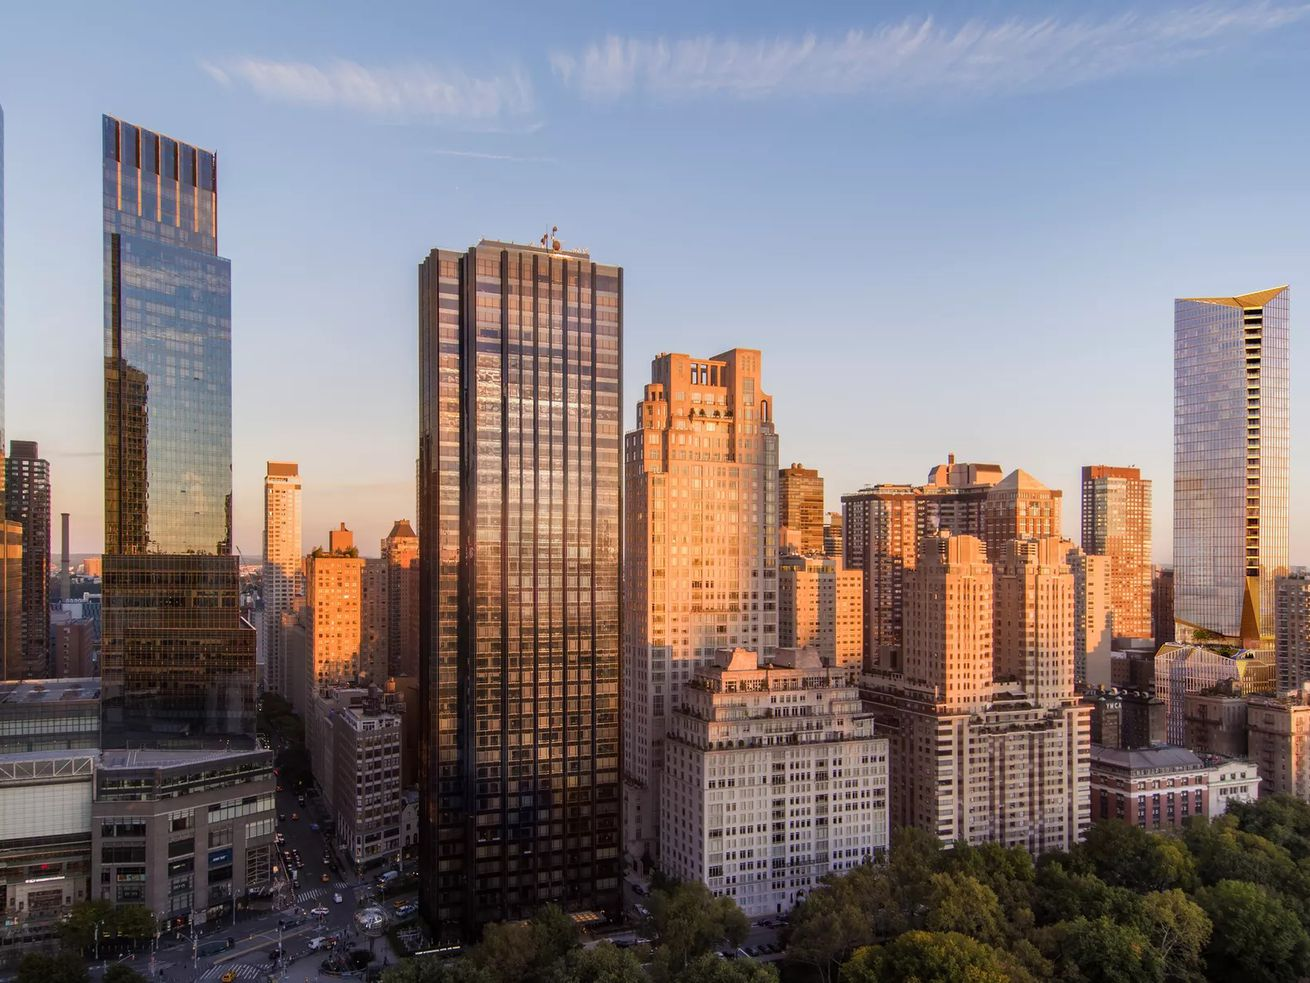 Extell's 50 West 66th Street, at right, will become the Upper West Side's tallest building.